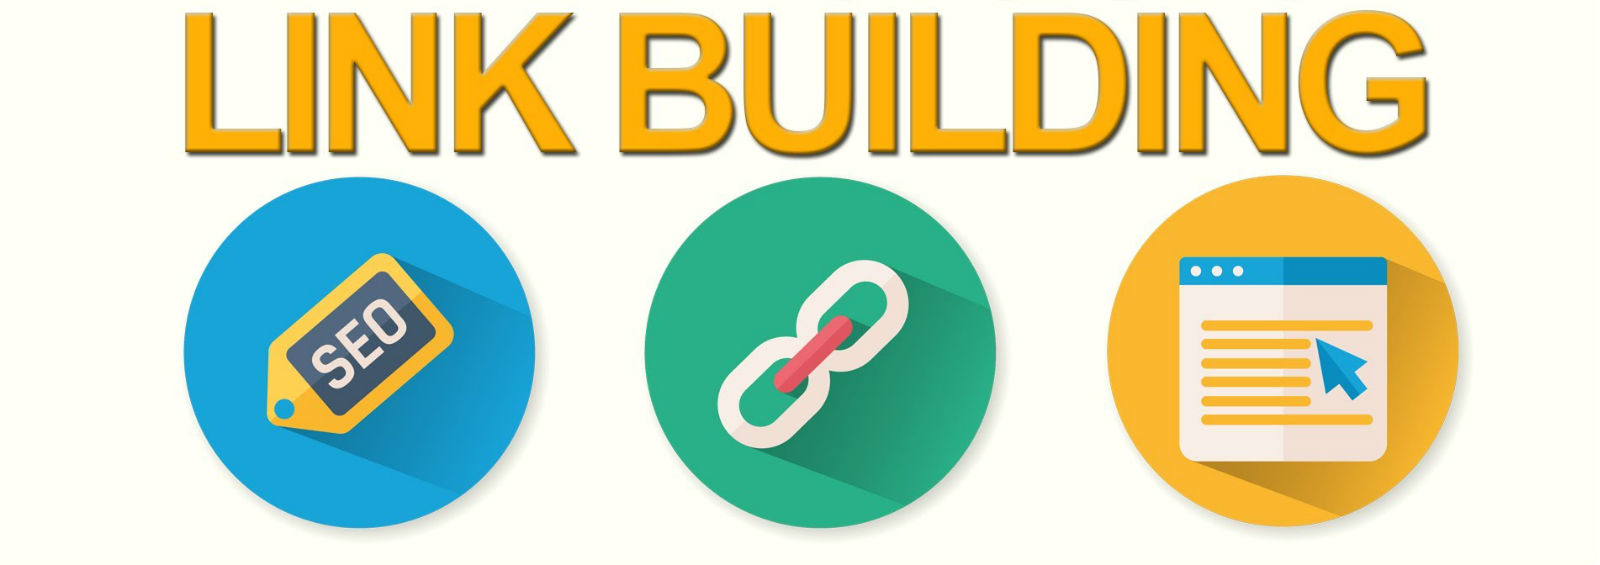 Link Building - Create 1000 DR70 Super Powerful Backlinks